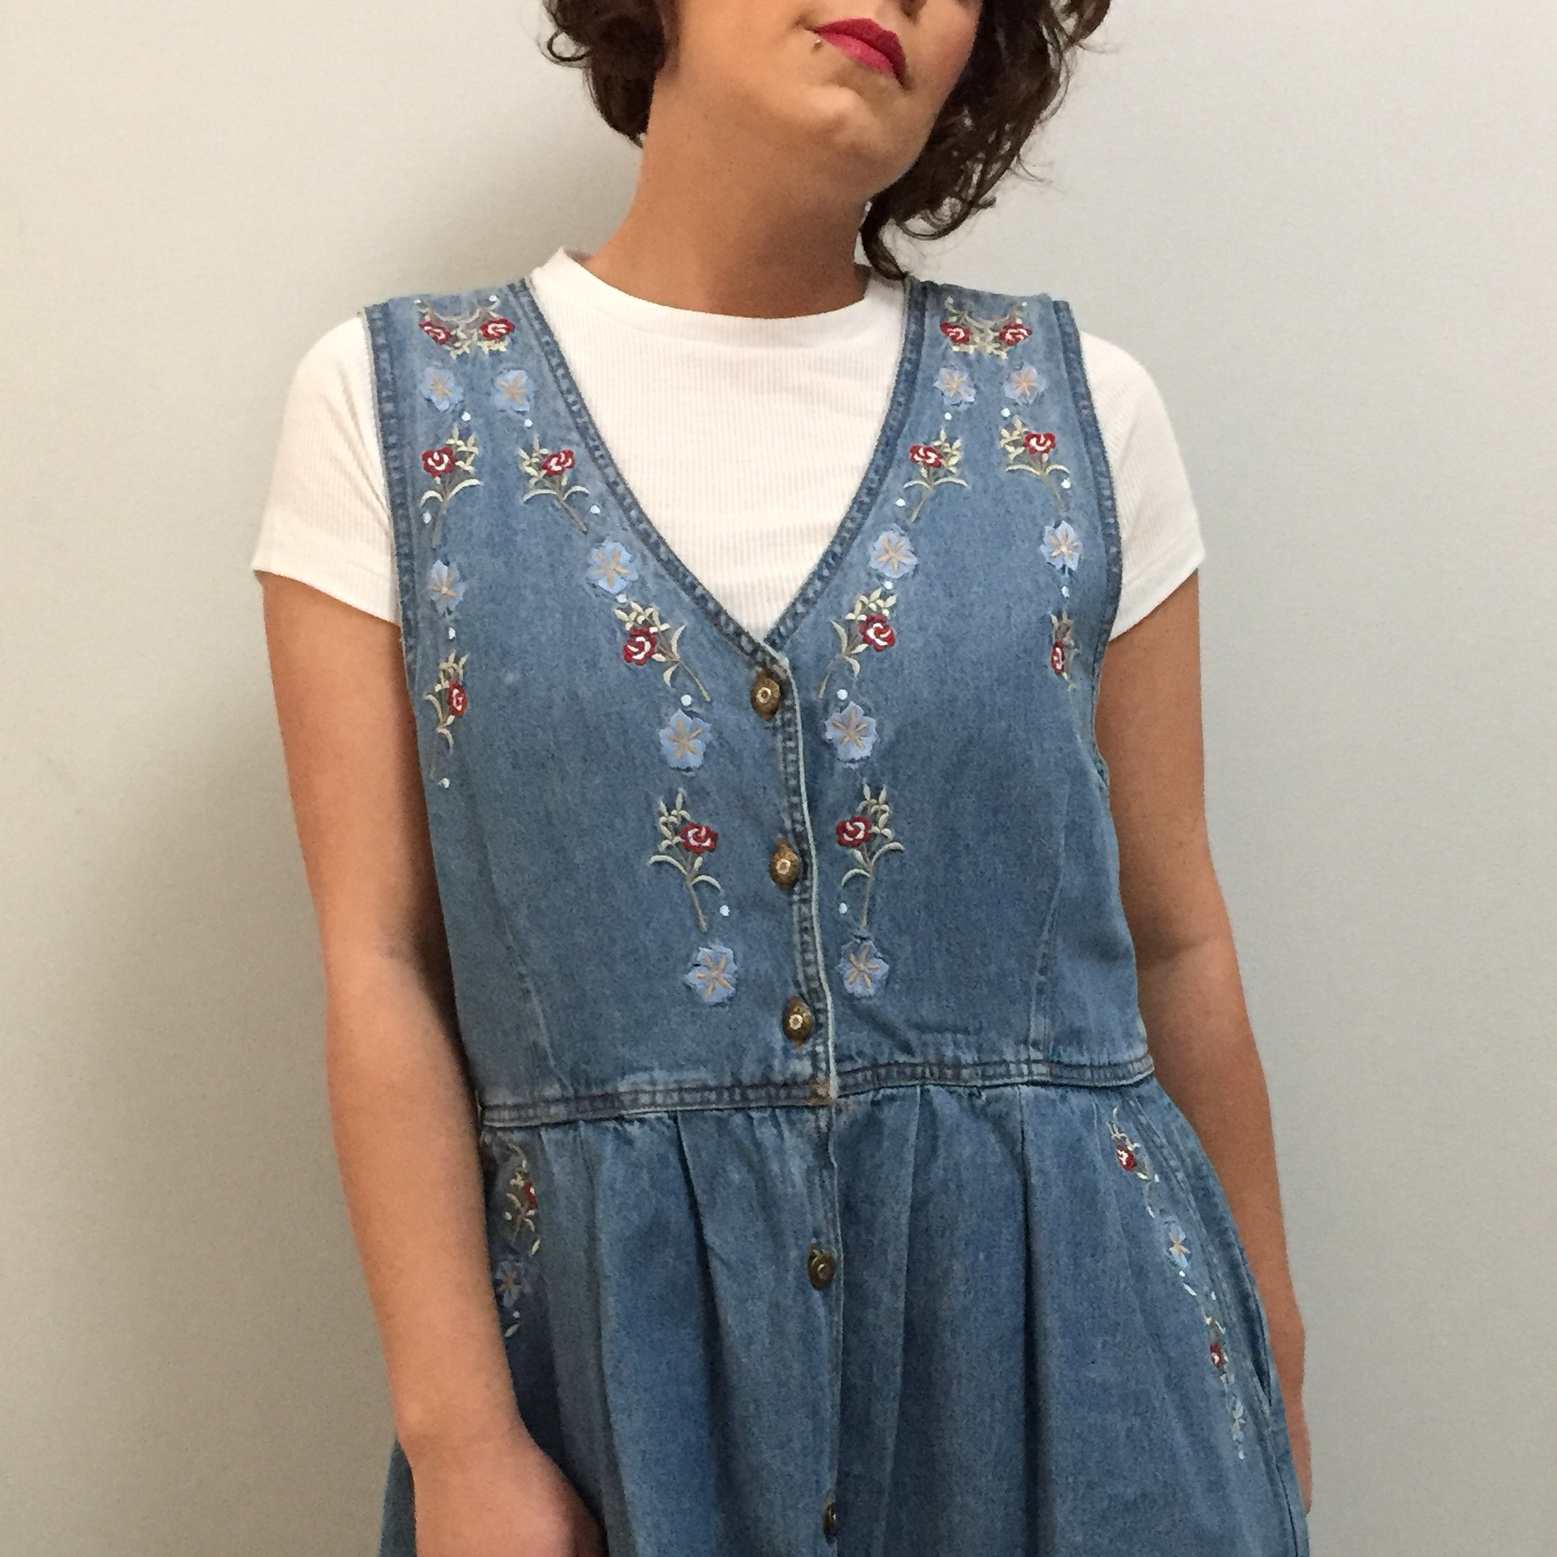 bab86fa0a18 The most amazing vintage  retro embroidered button up denim - Depop